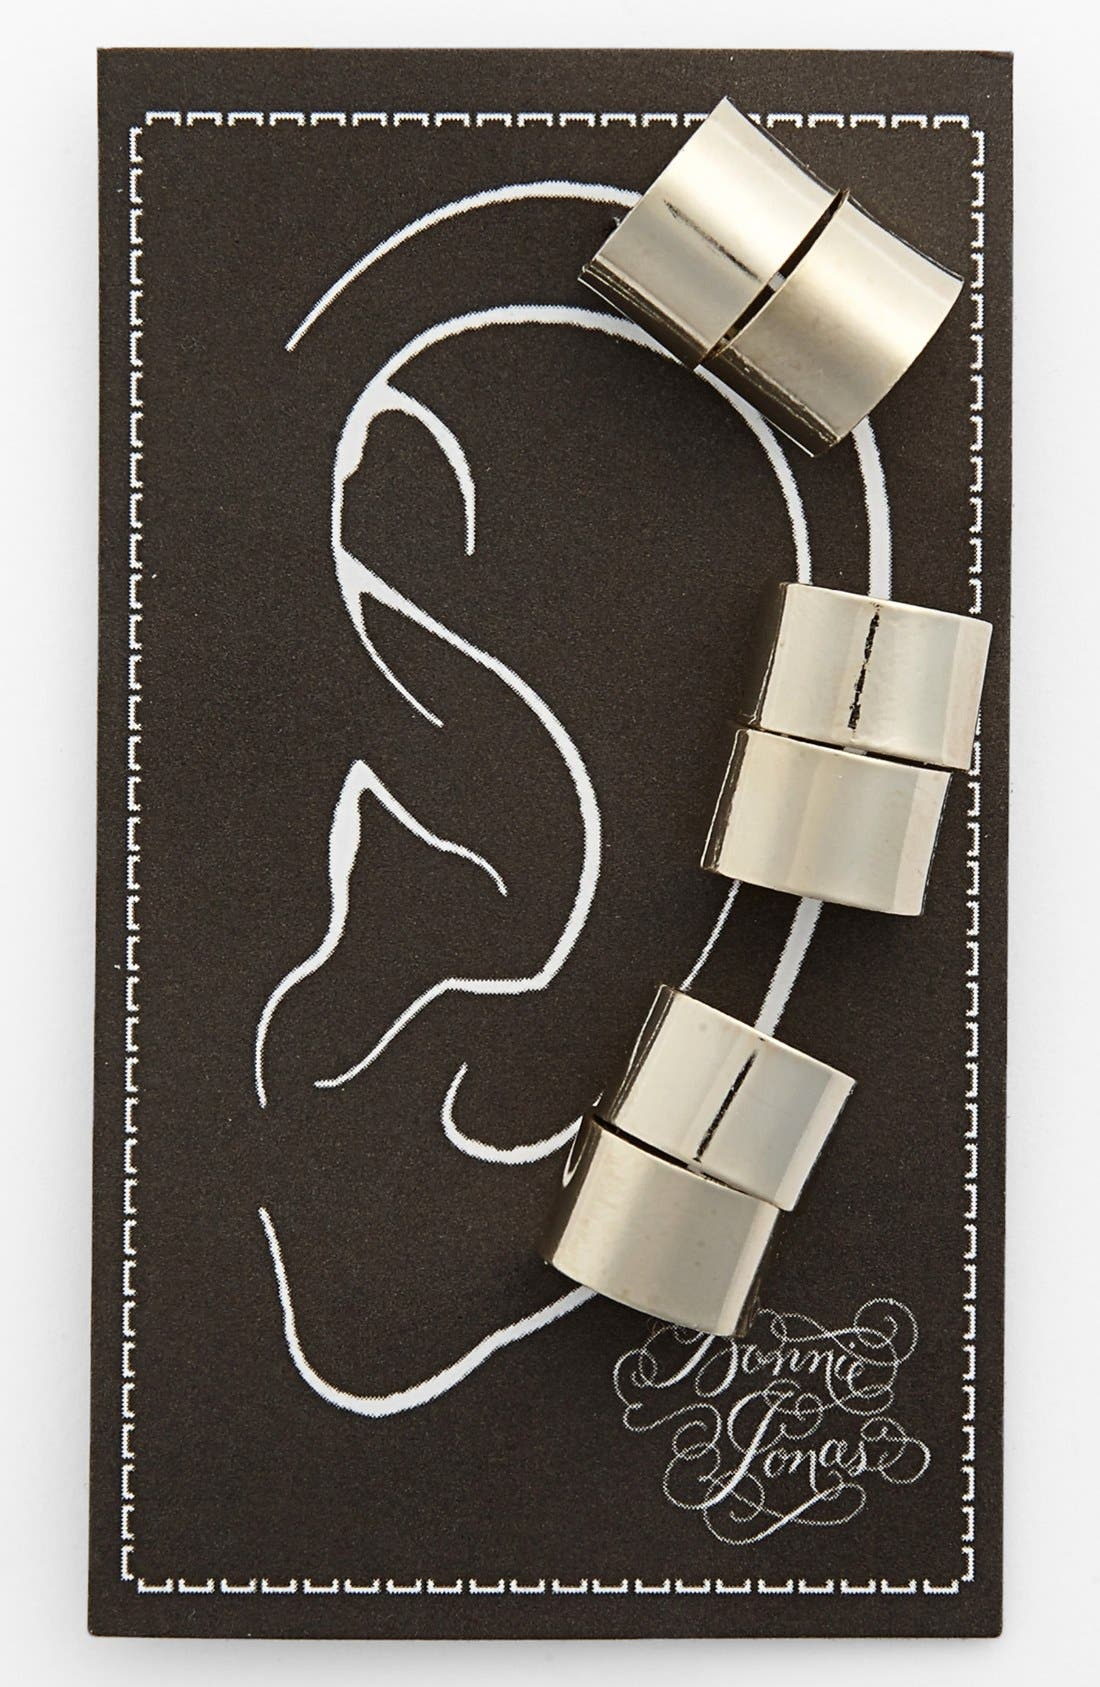 Alternate Image 1 Selected - Bonnie Jonas Ear Cuffs (Set of 6)